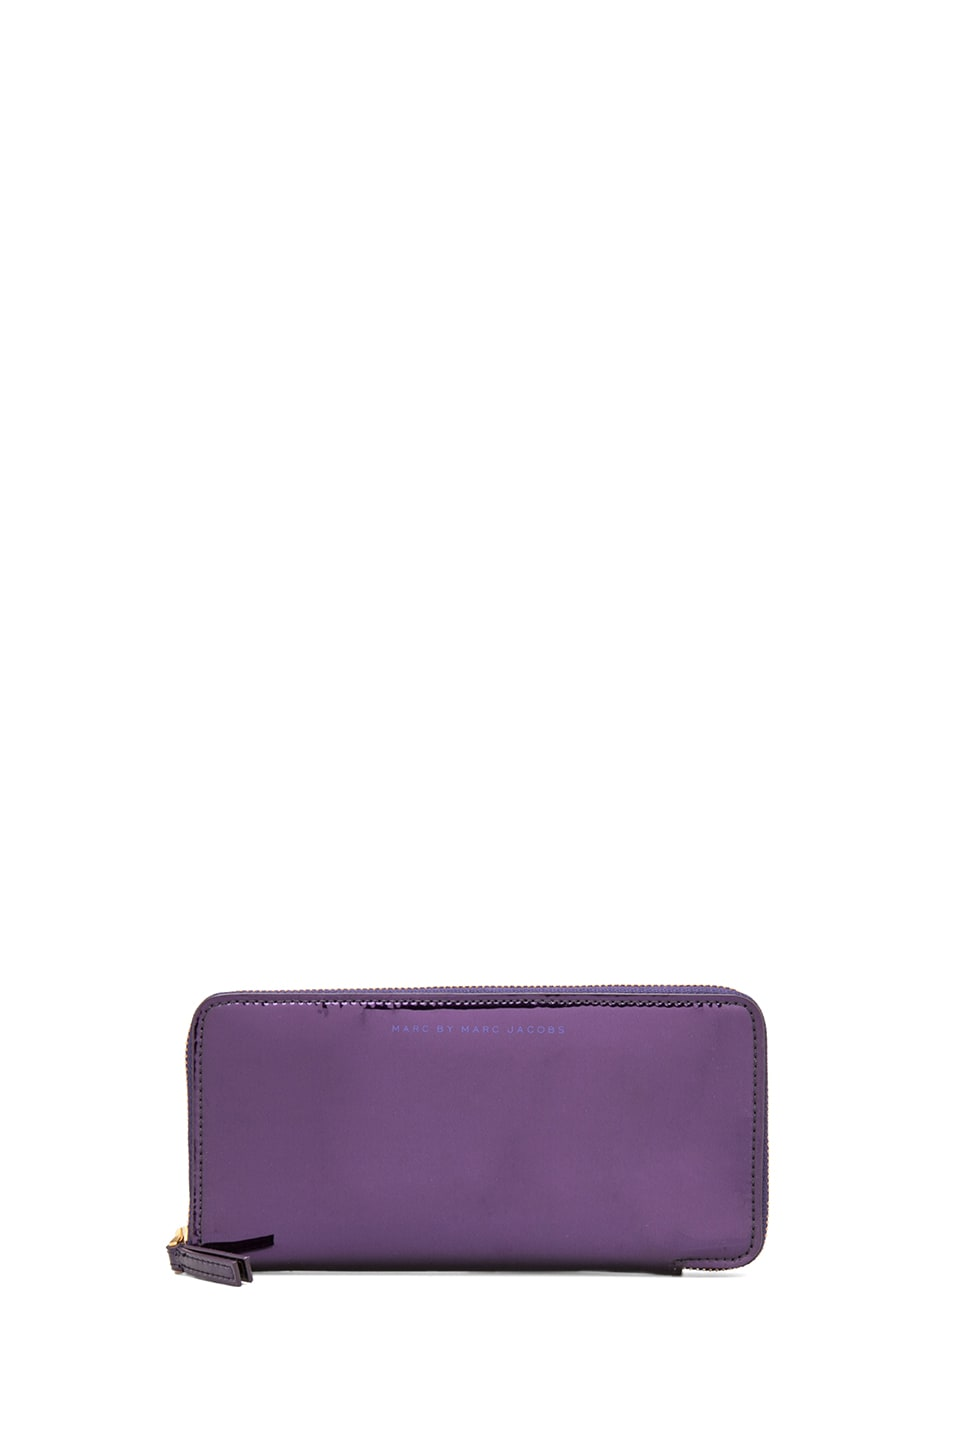 Marc by Marc Jacobs Techno Slim Zippy in Purple Holographic